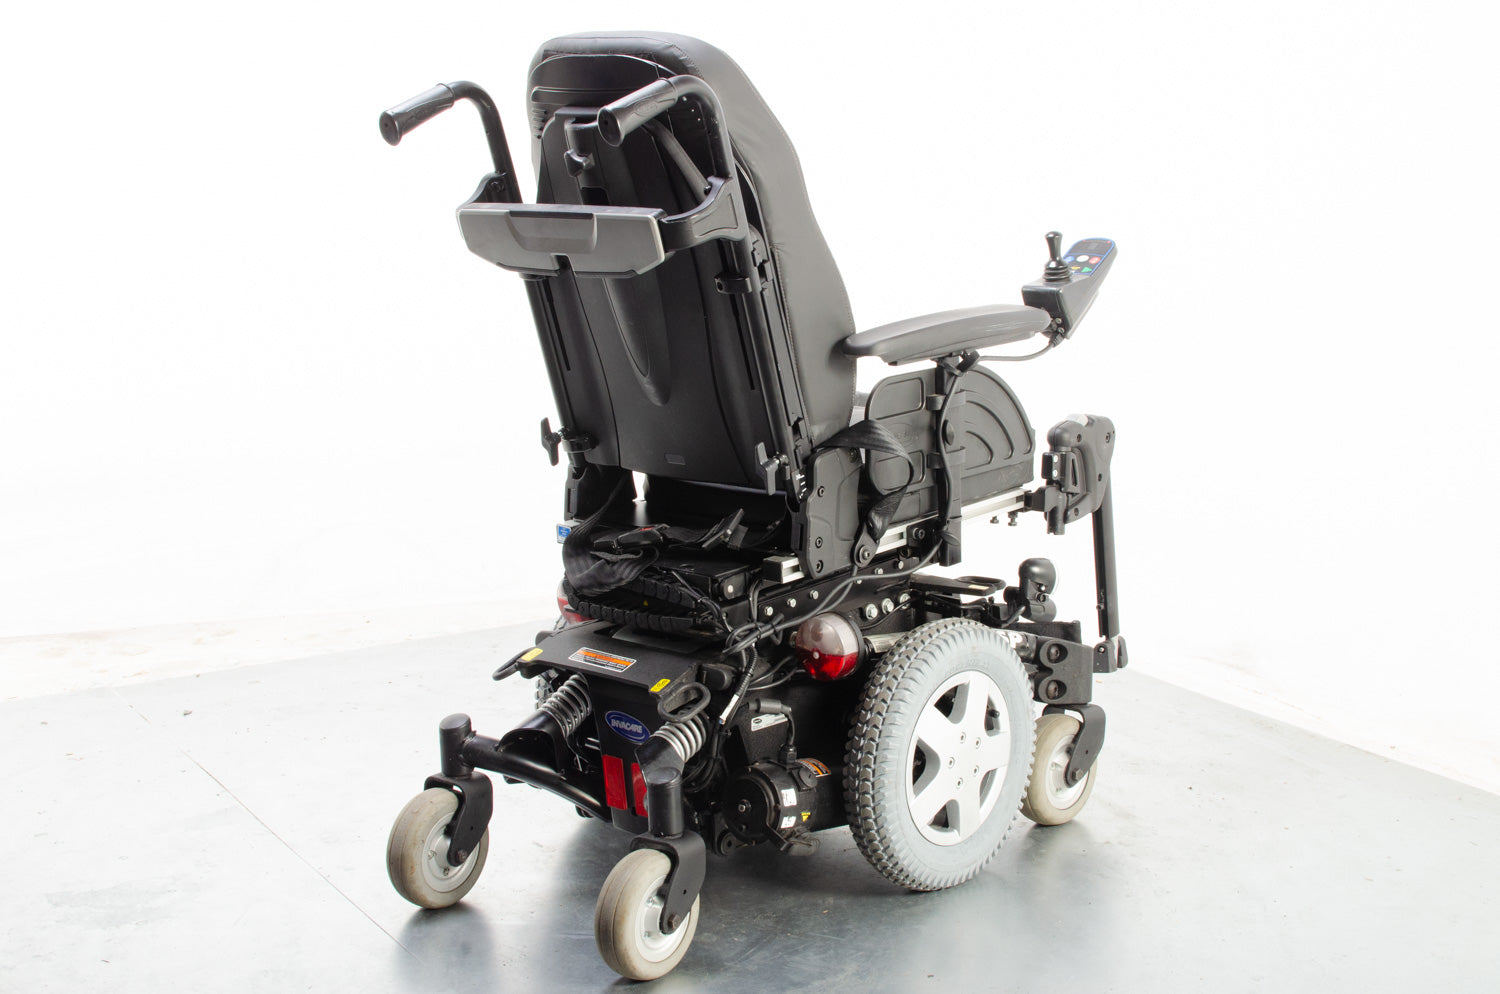 2014 Invacare TDX SP 4mph Powerchair Electric Wheelchair Black 16""